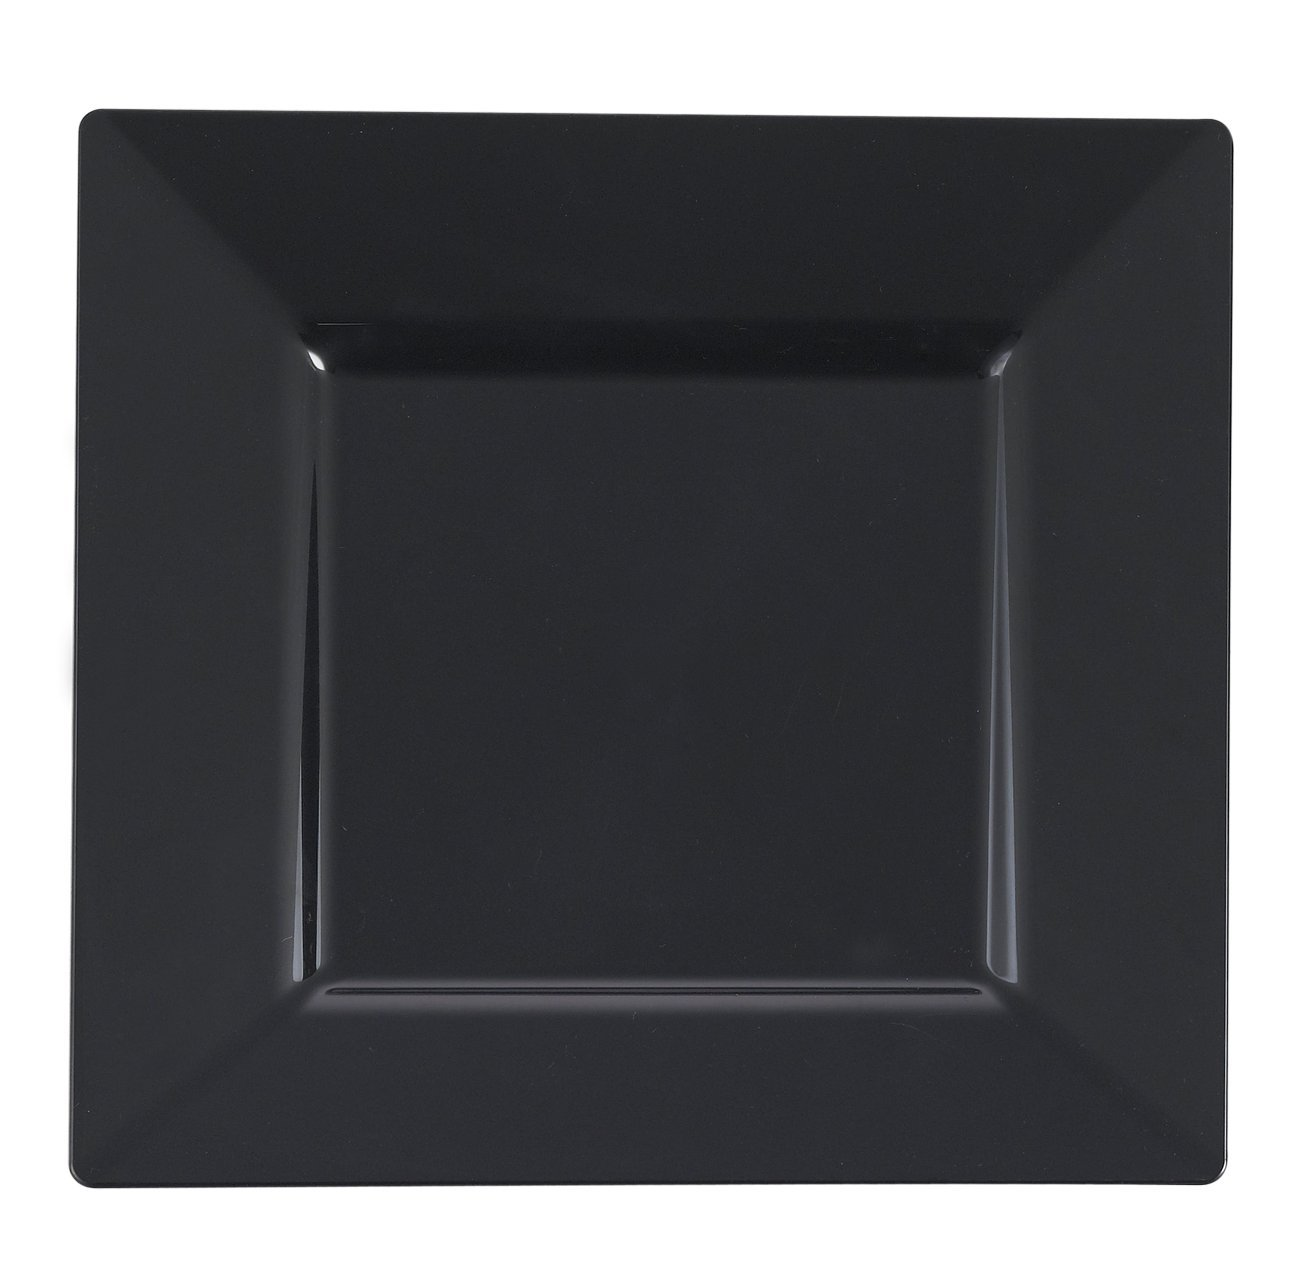 Kaya Collection - Black Plastic Square 10.75'' Dinner Plates - Disposable or Reusable - 1 Case (120 Plates) by Kaya Collection (Image #1)